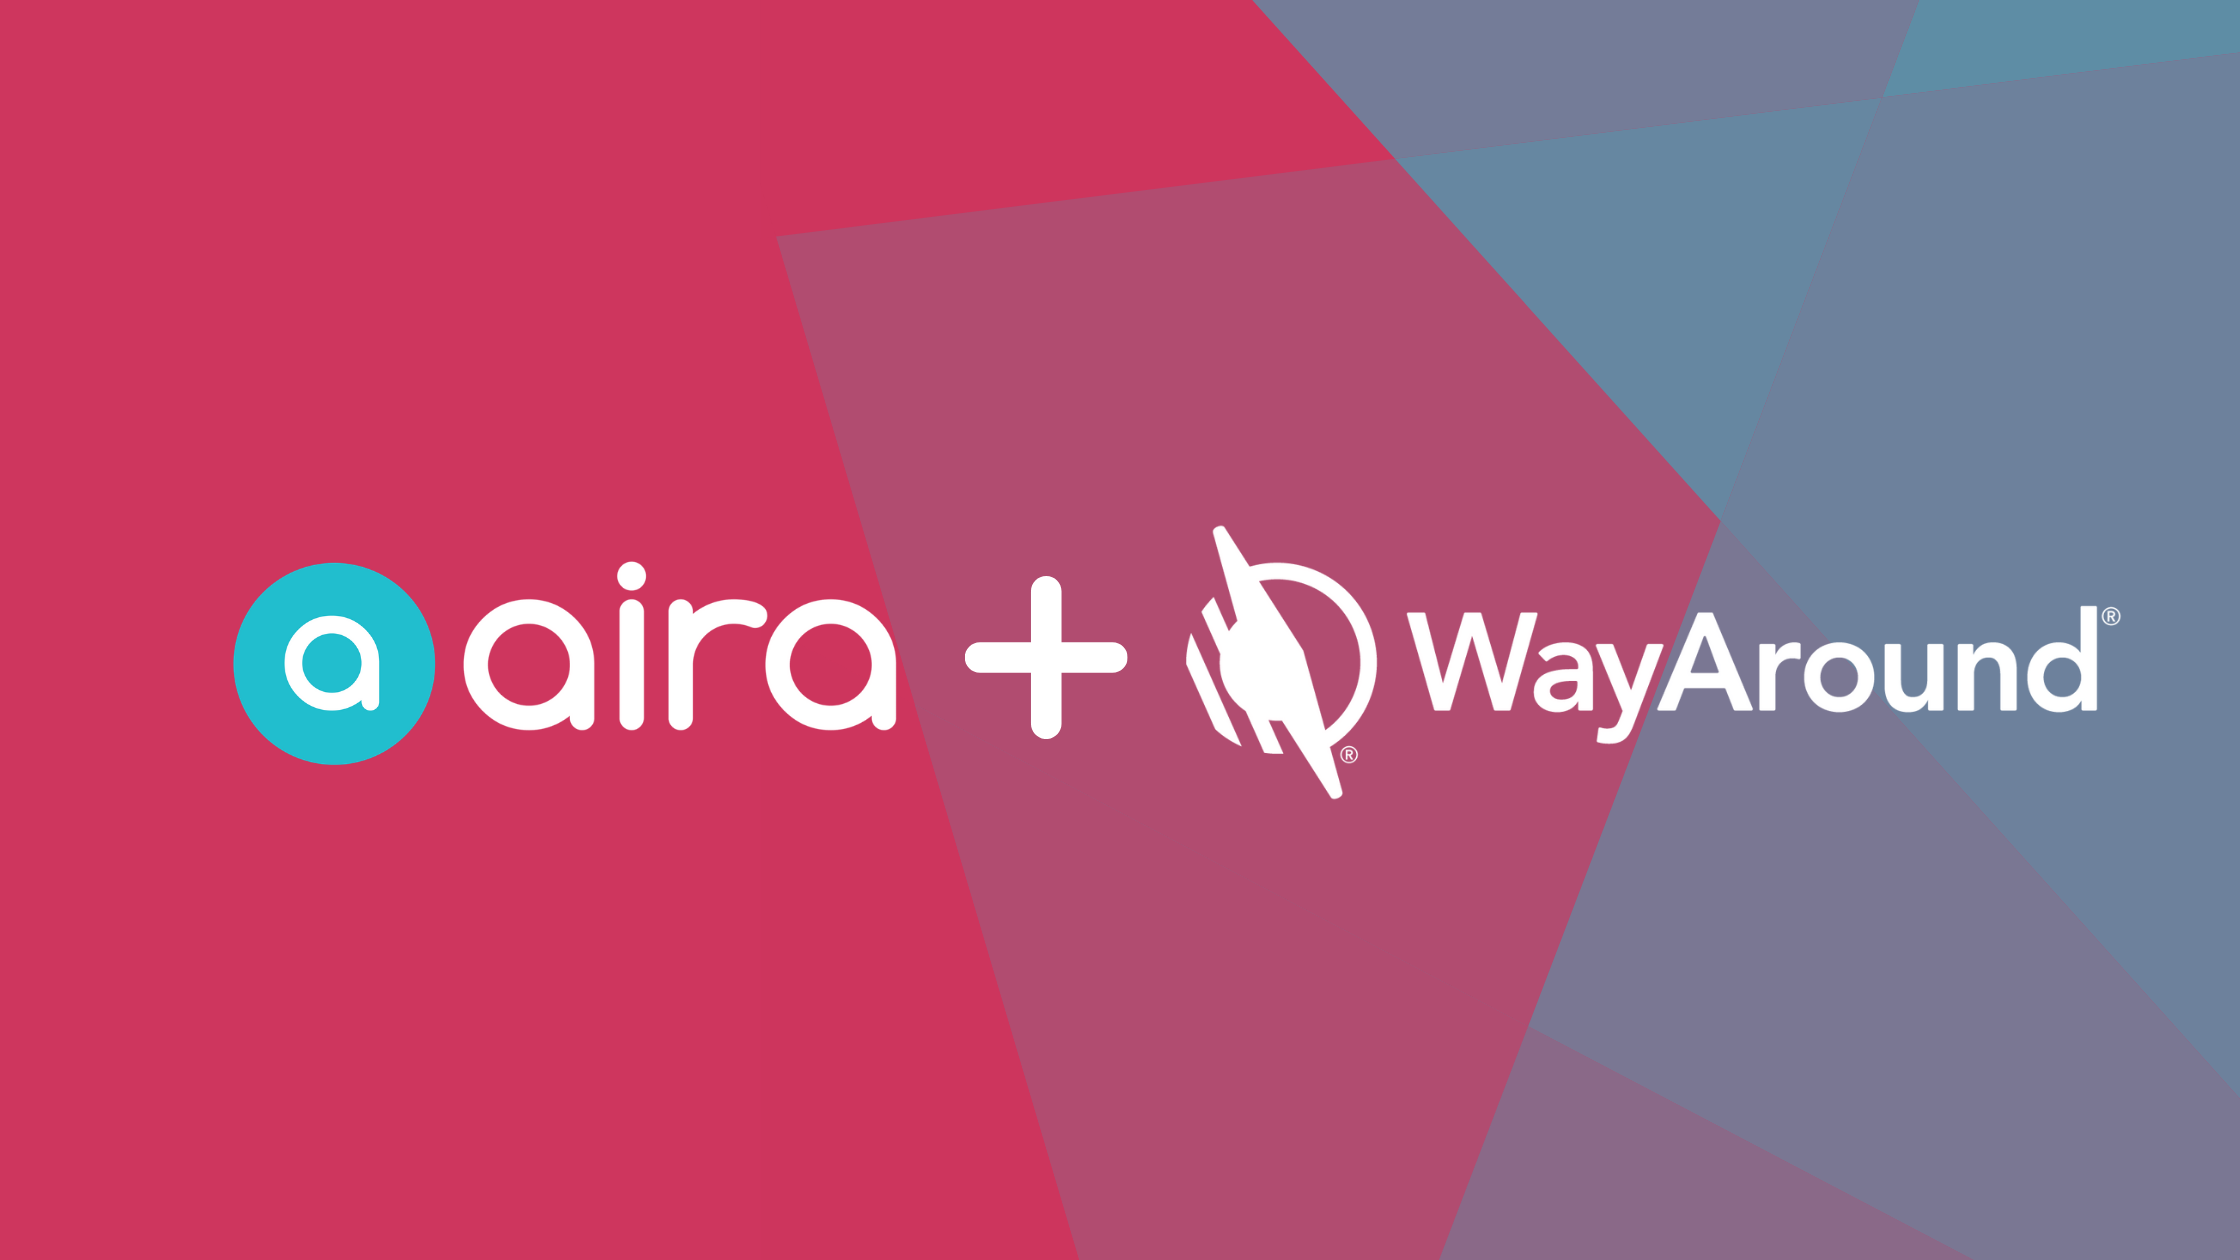 Banner image with red and blue background that says aira + WayAround. Image includes both companies' logos.